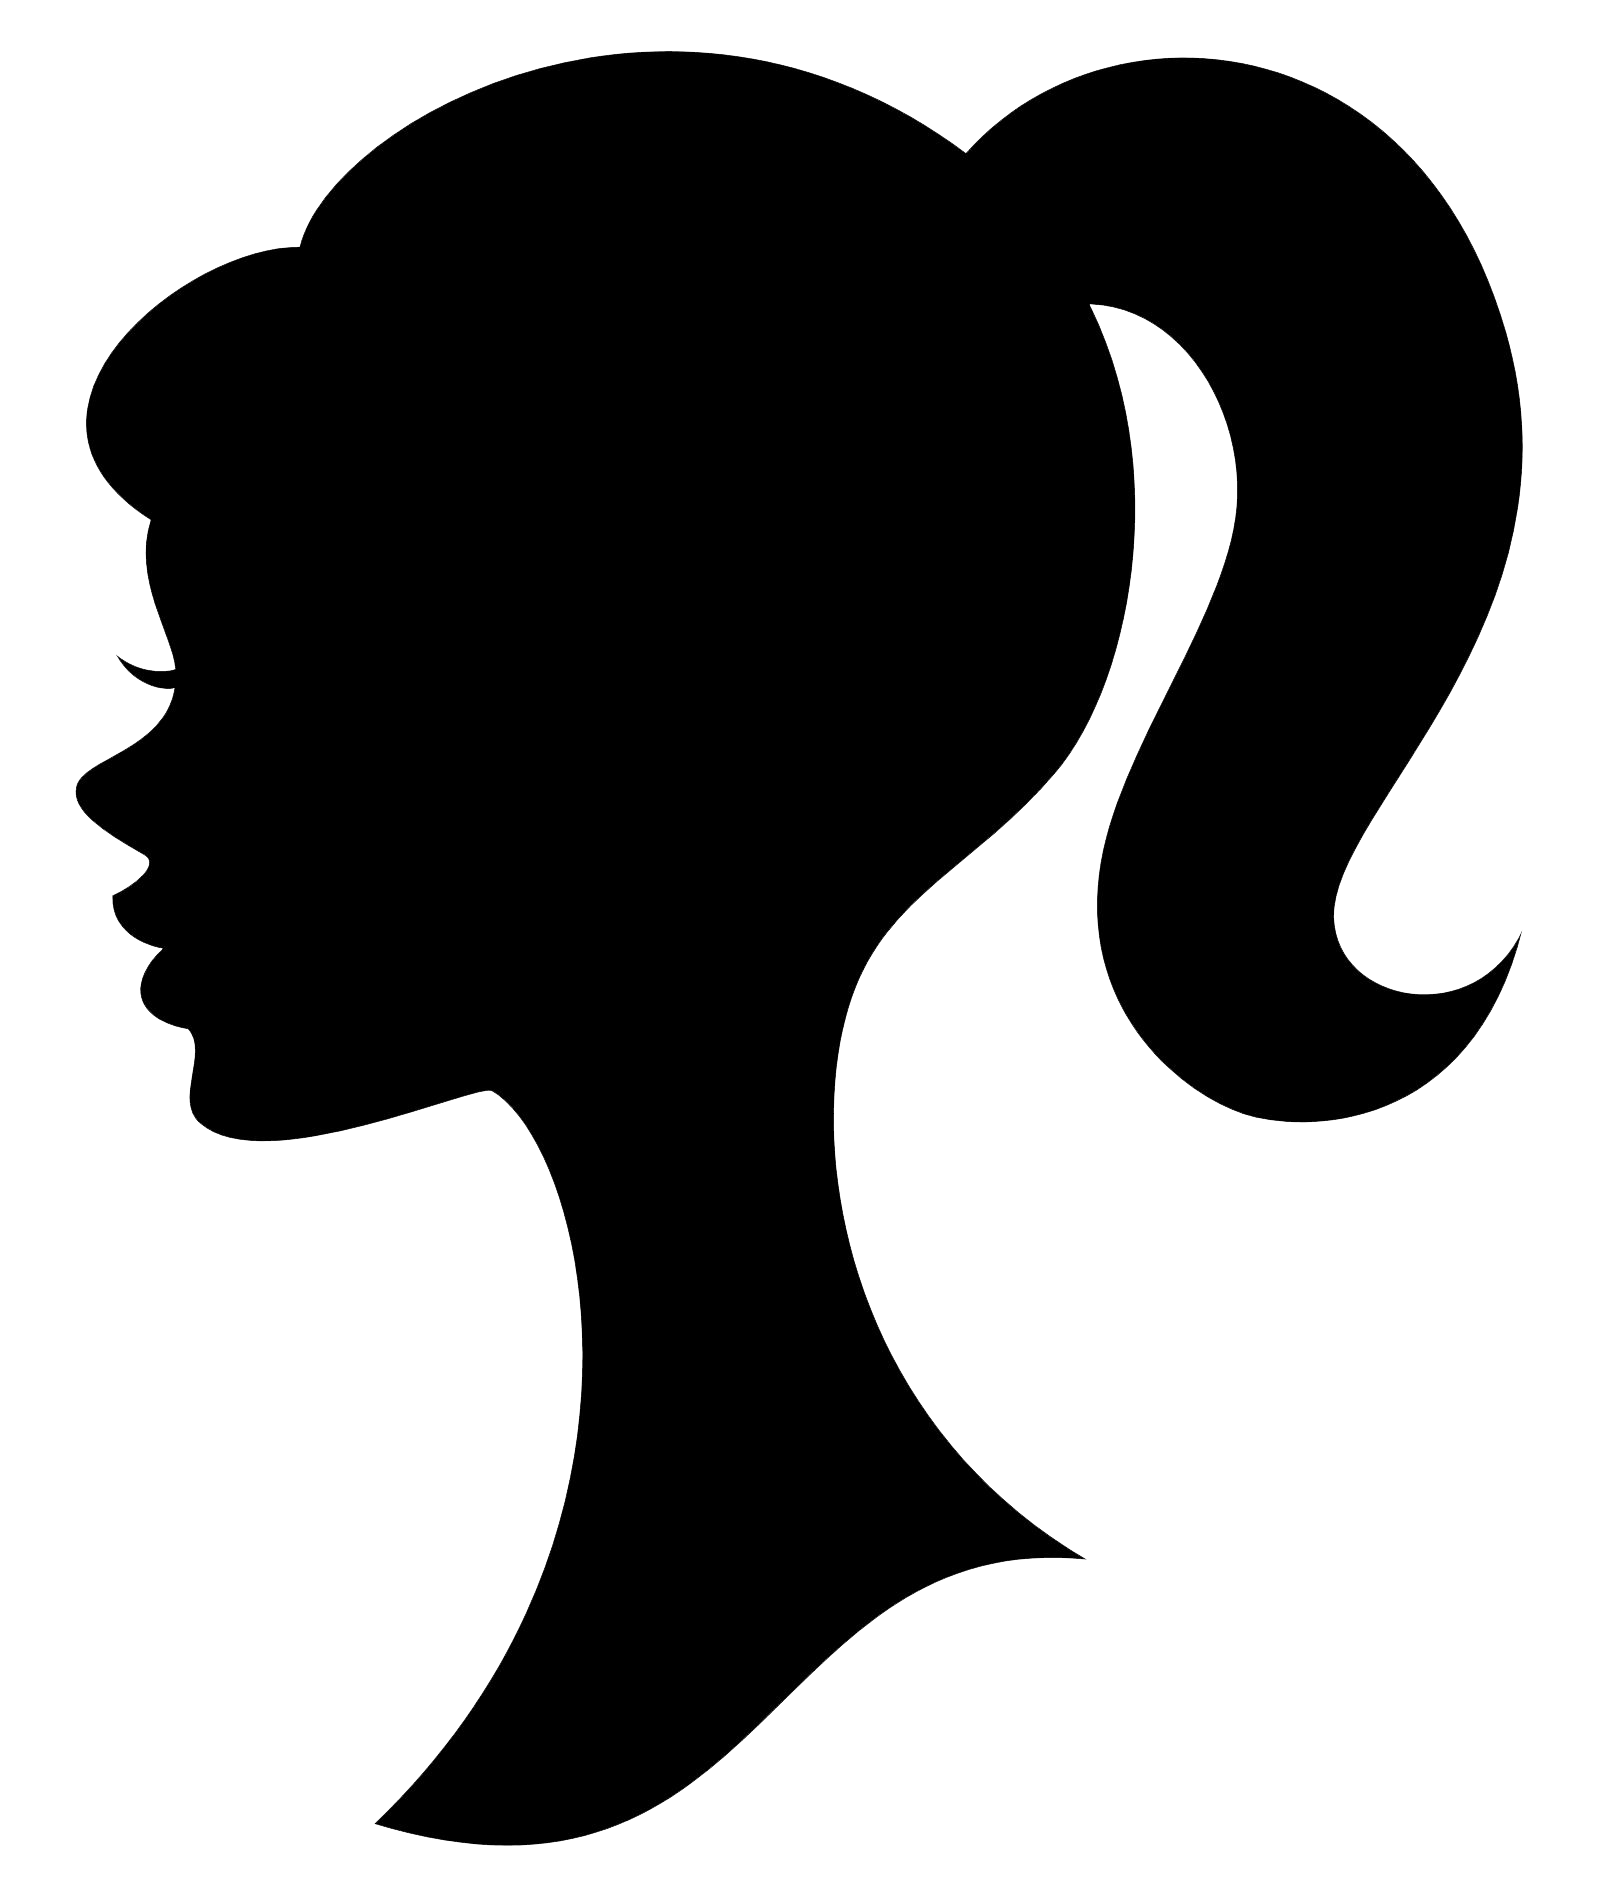 Clipartbest Male Head Silhouette